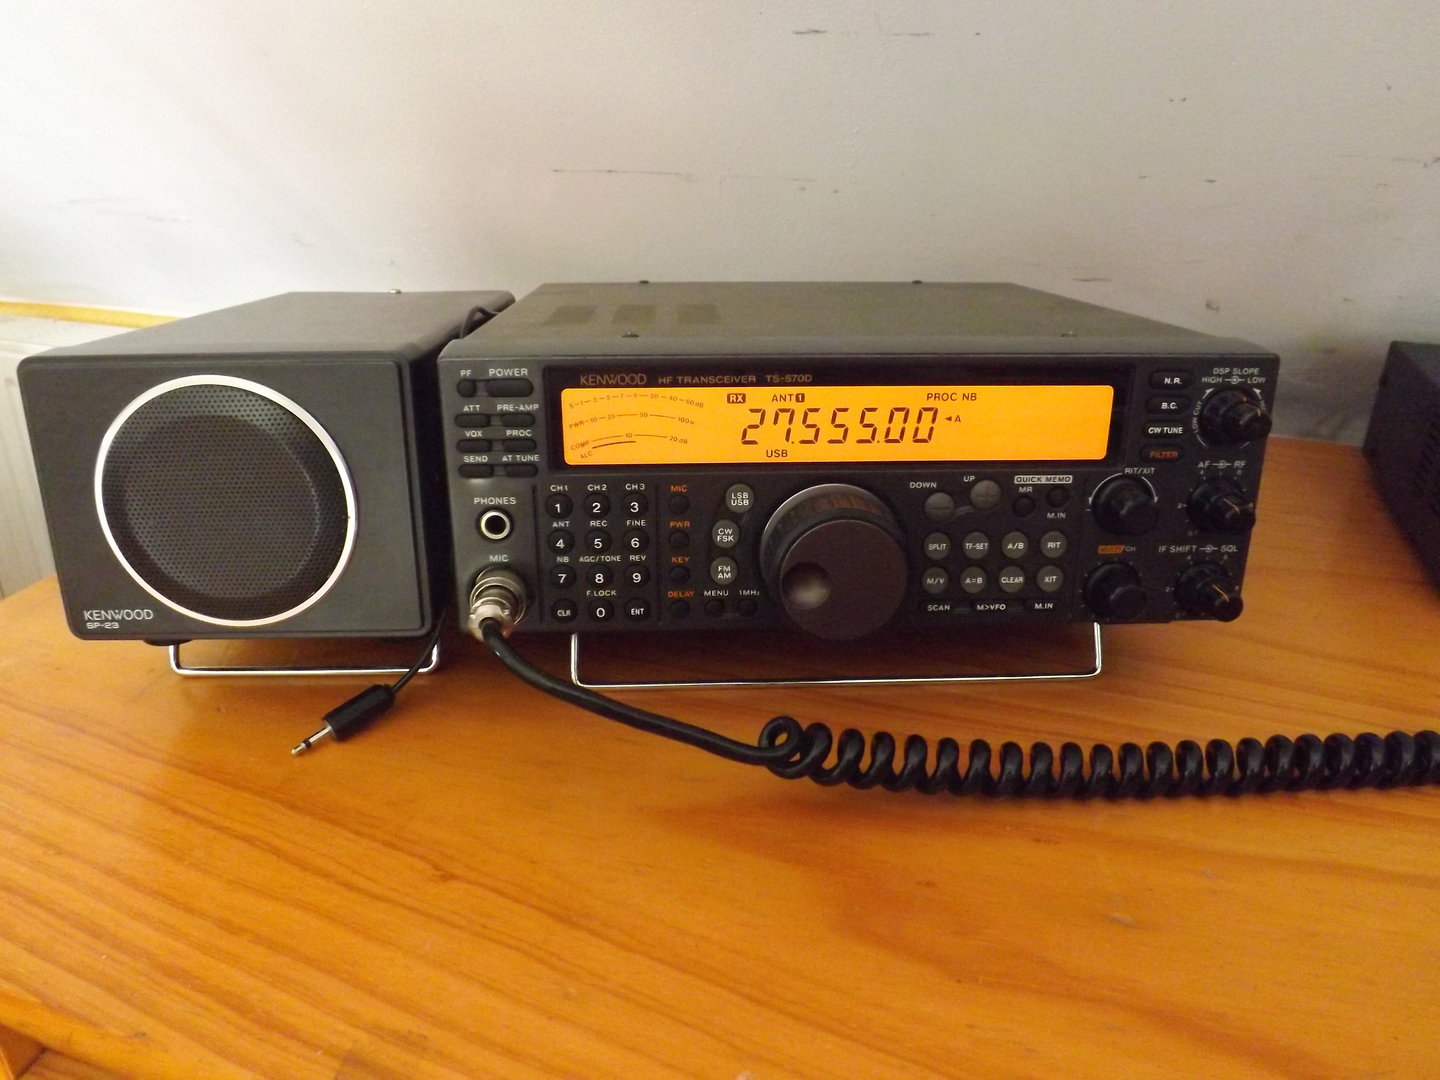 sp 23 The sp-23 external speaker has been designed for use with icom base station transceivers and receivers, but in particular the ic-7400 and the ic-756proii/iii the sp-23 is the successor to the sp-21 and has been upgraded to include built in high and low pass filters to obtain the maximum audio .